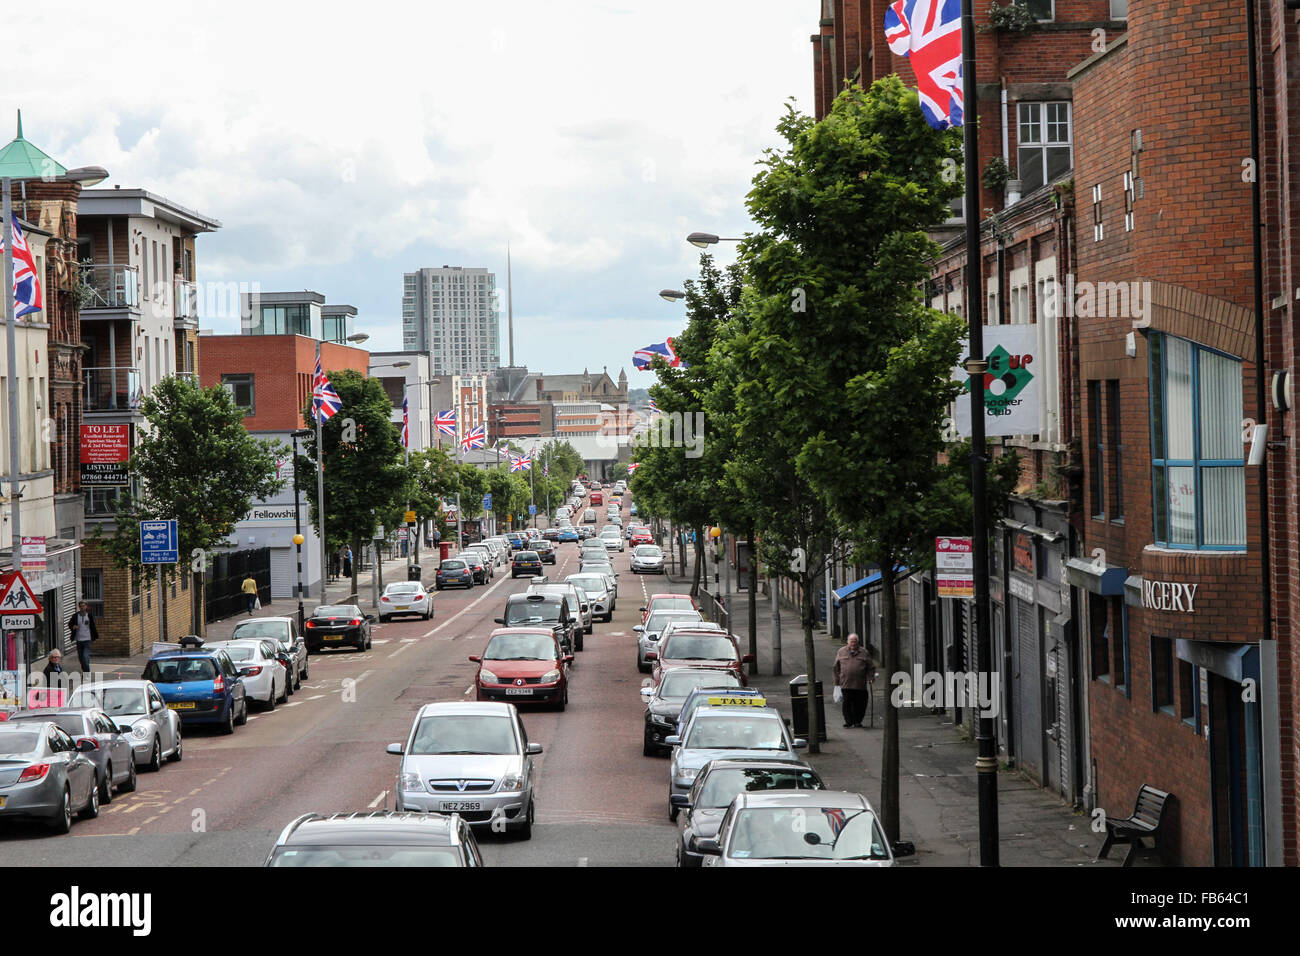 View of the lower part of the Shankill Road, Belfast, Northern Ireland - Stock Image